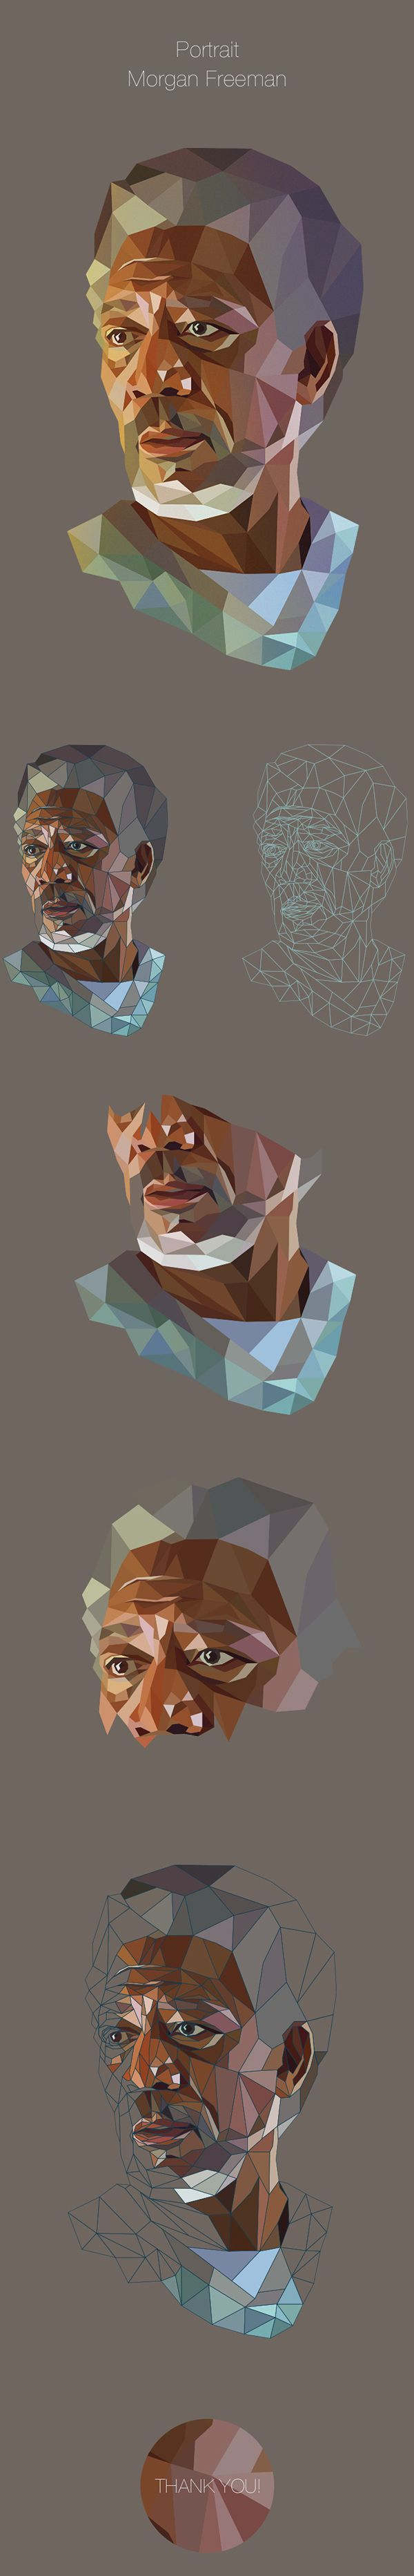 Low Poly Portrait on Behance https://www.behance.net/gallery/21440501/Low-Poly-Portrait